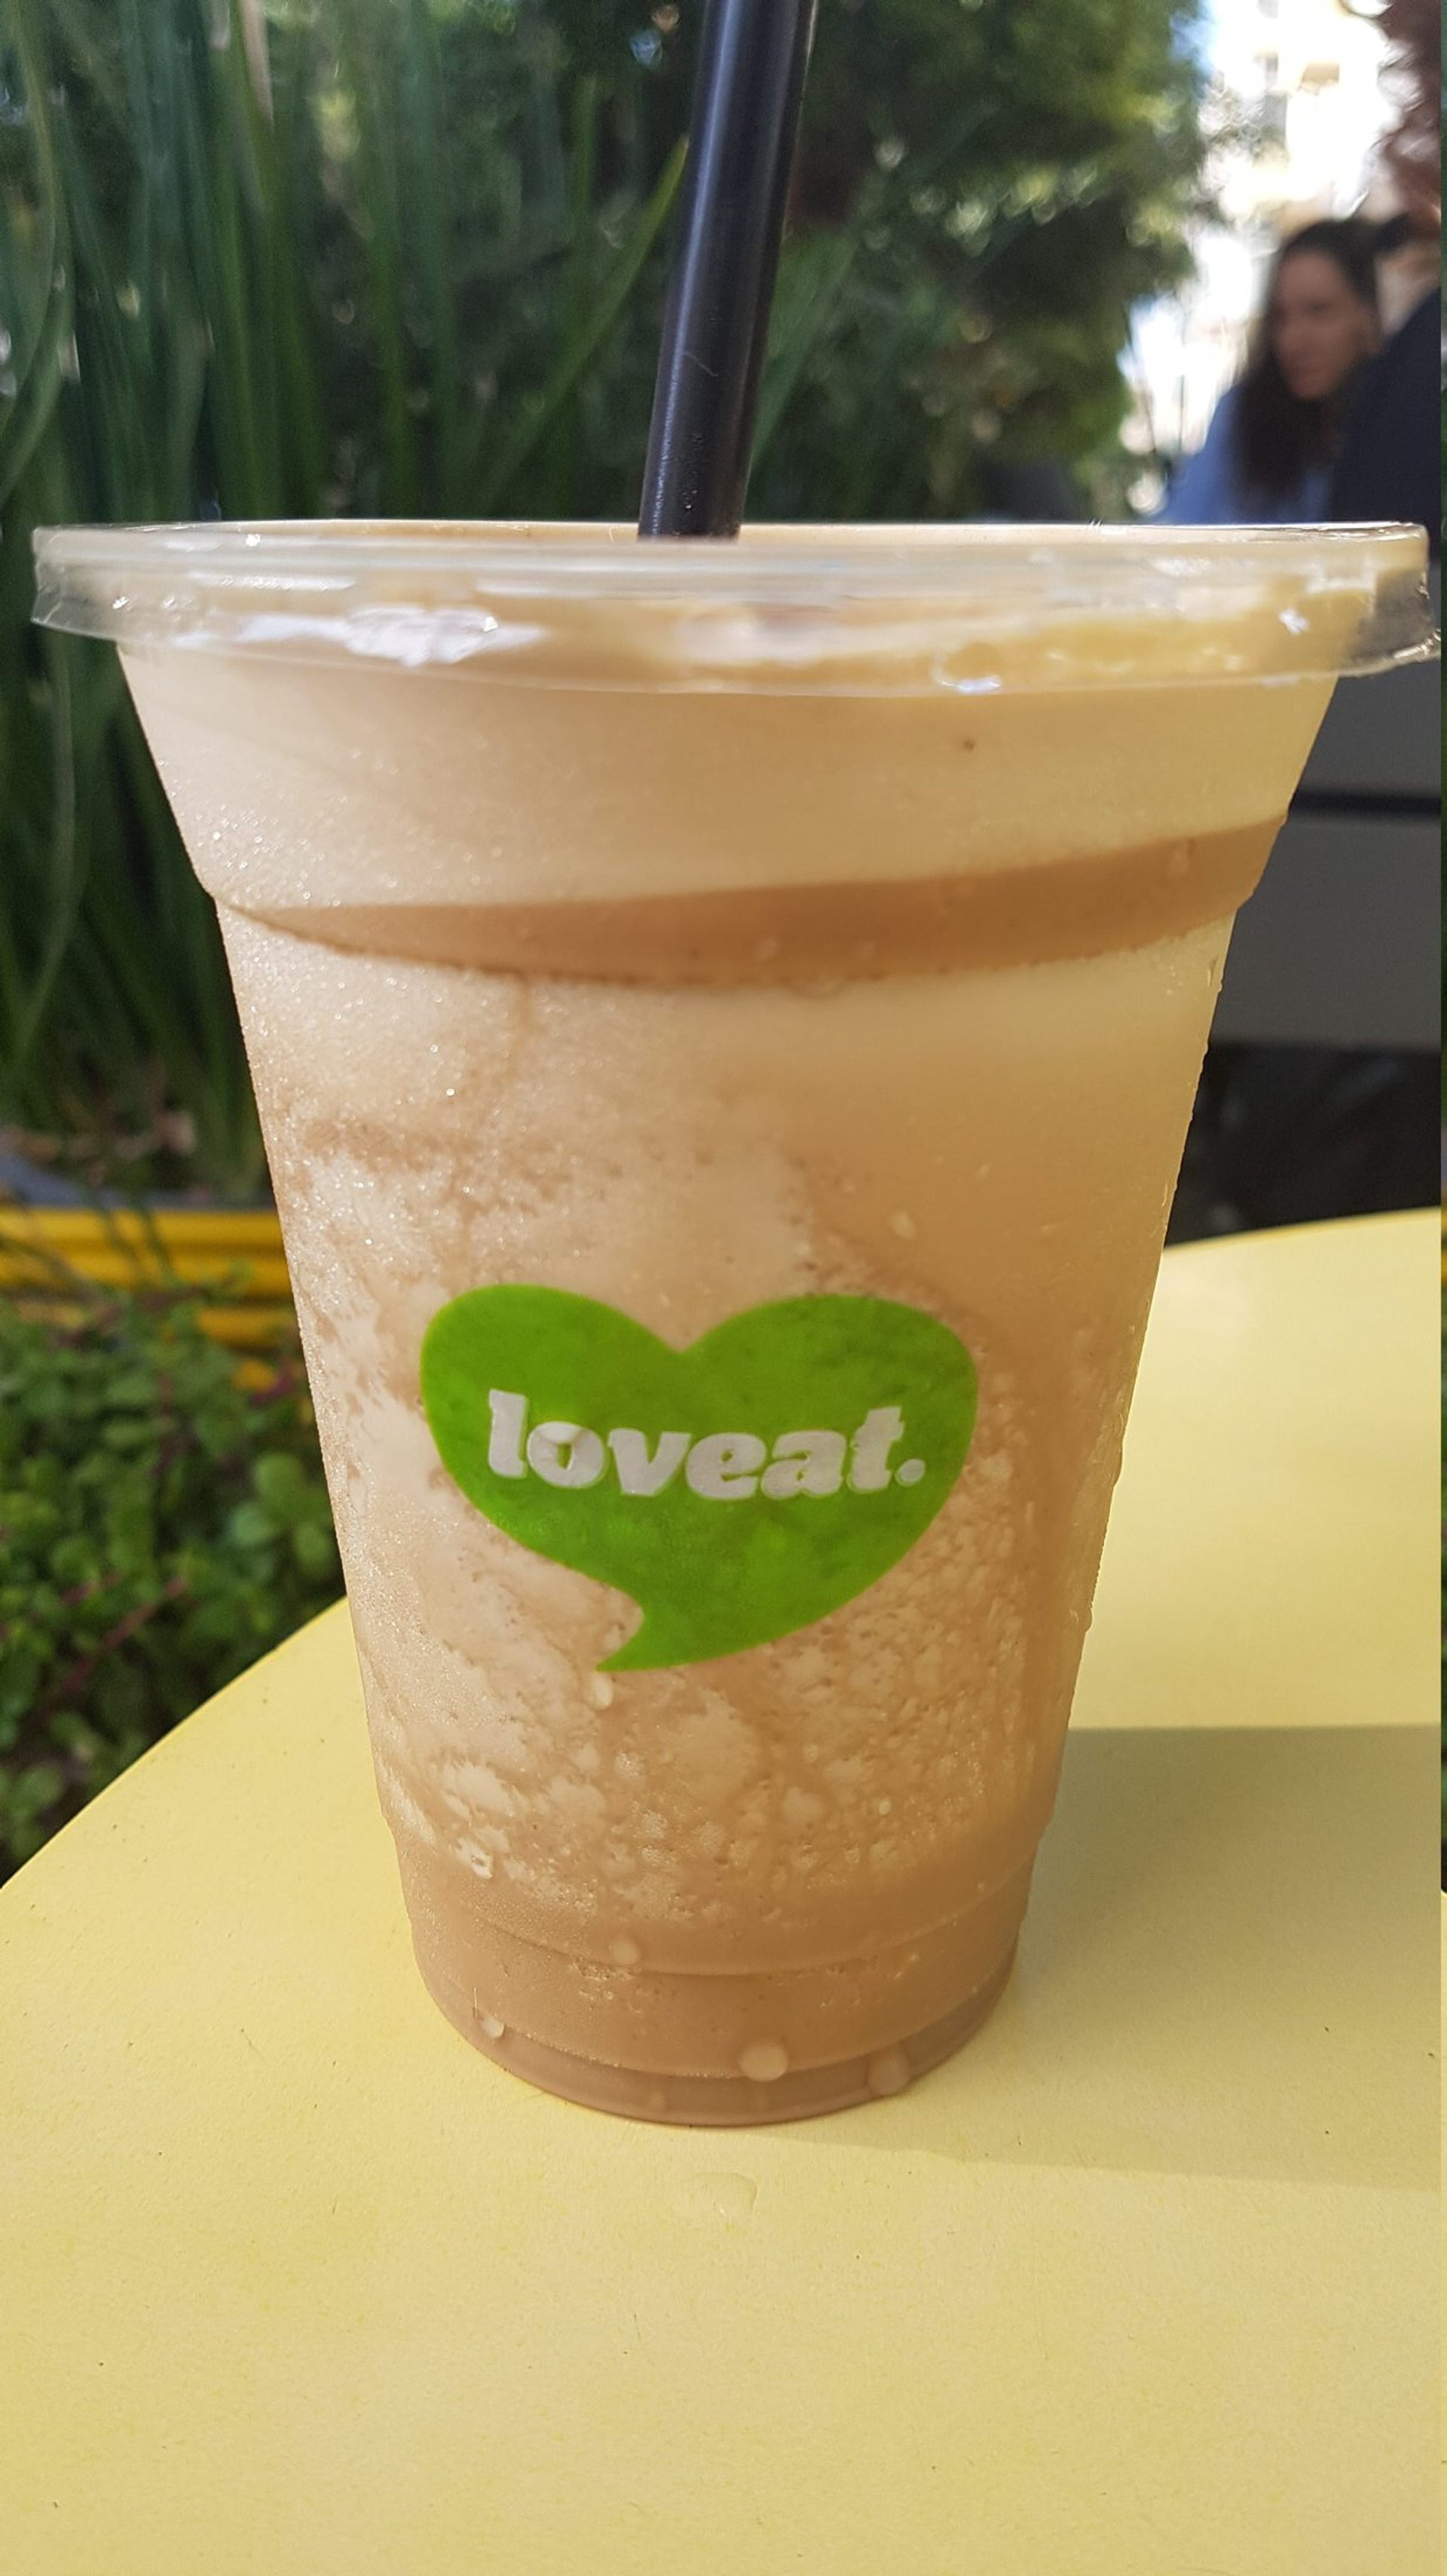 Loveat's frozen coffee. Sweet but strong.